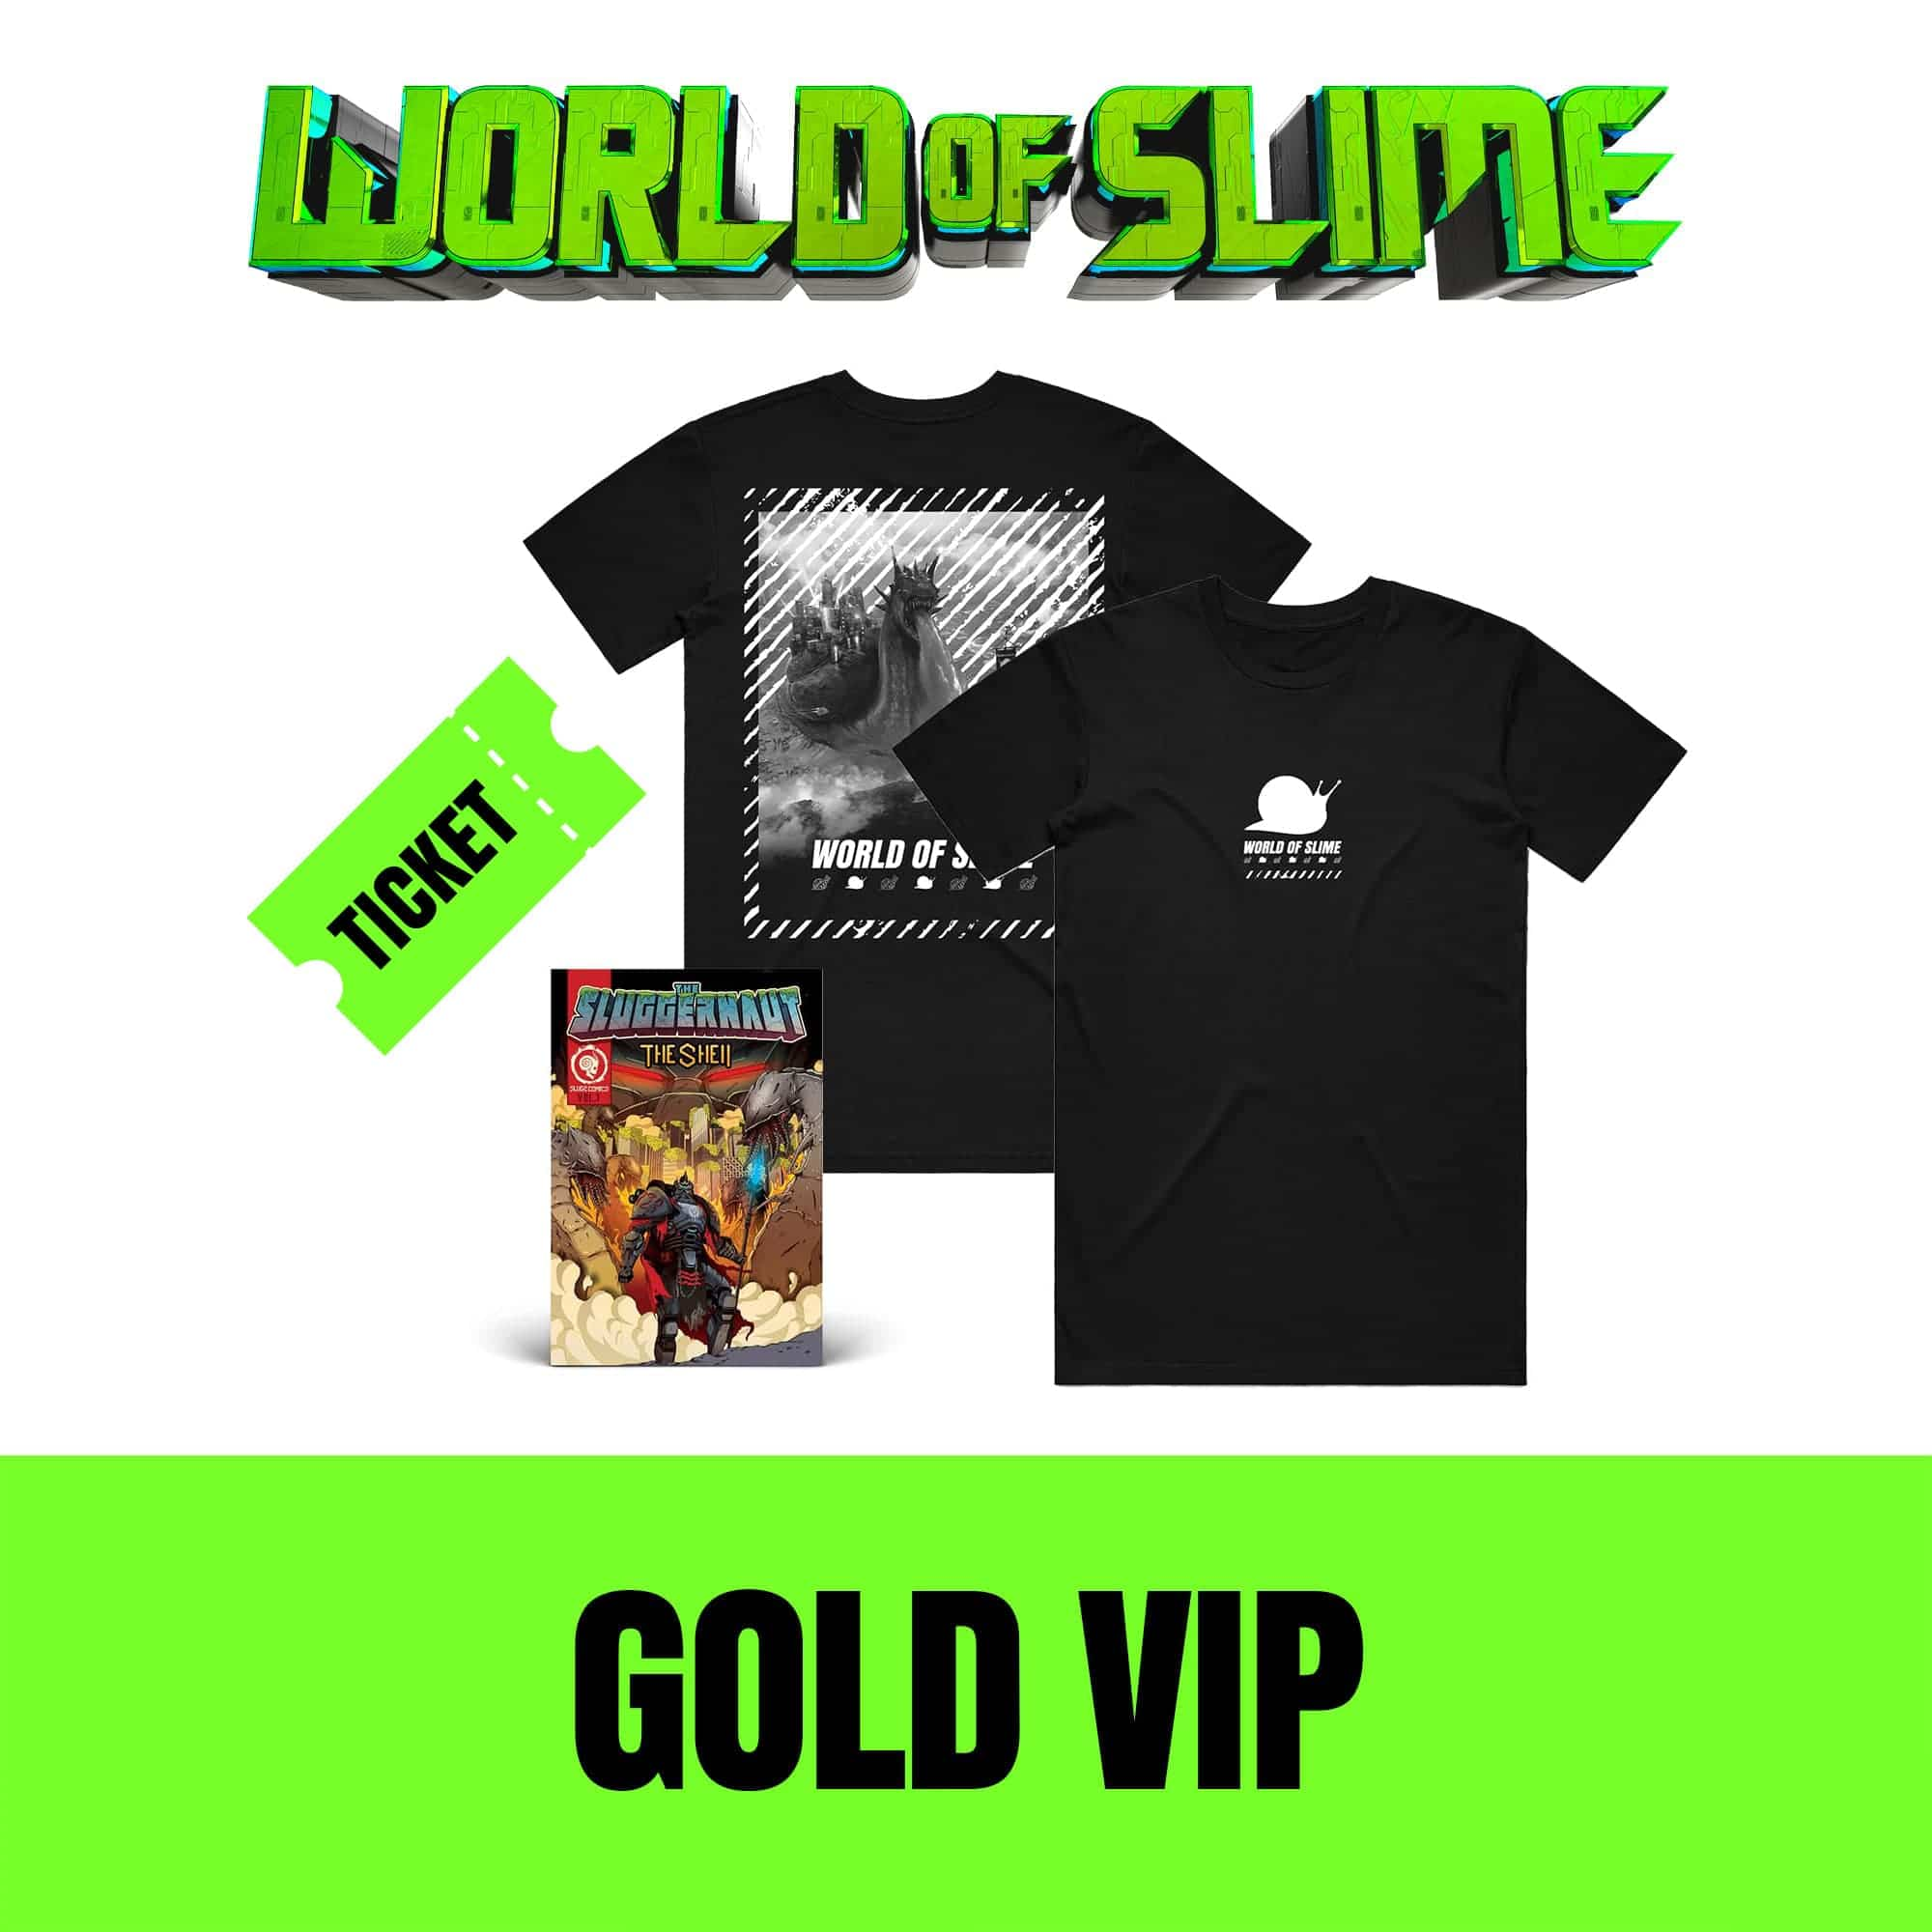 World Of Slime Tour - Las Vegas, NV - 11/22